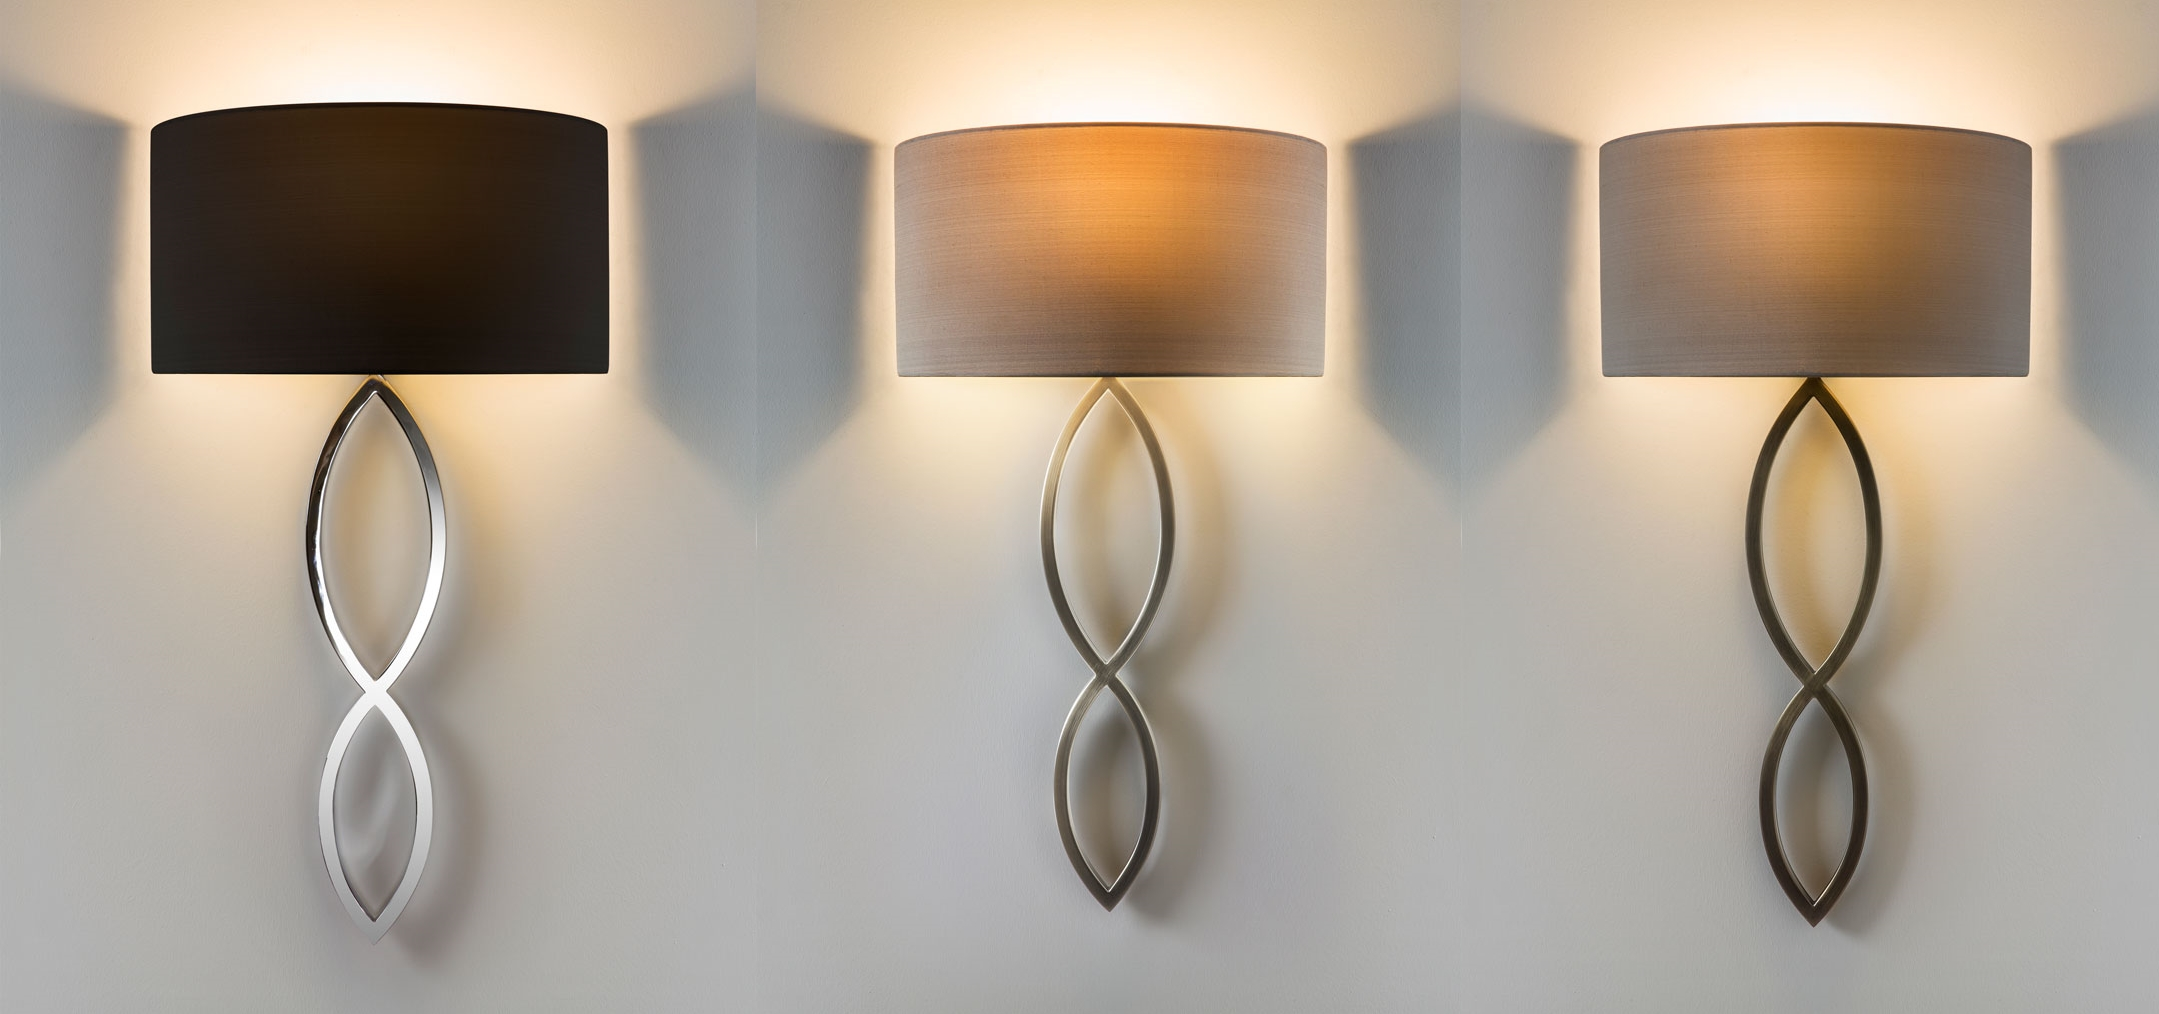 Stylish Wall Lights: Astro Caserta fabric shade stylish wall light 60W E27 chrome nickel bronze,Lighting